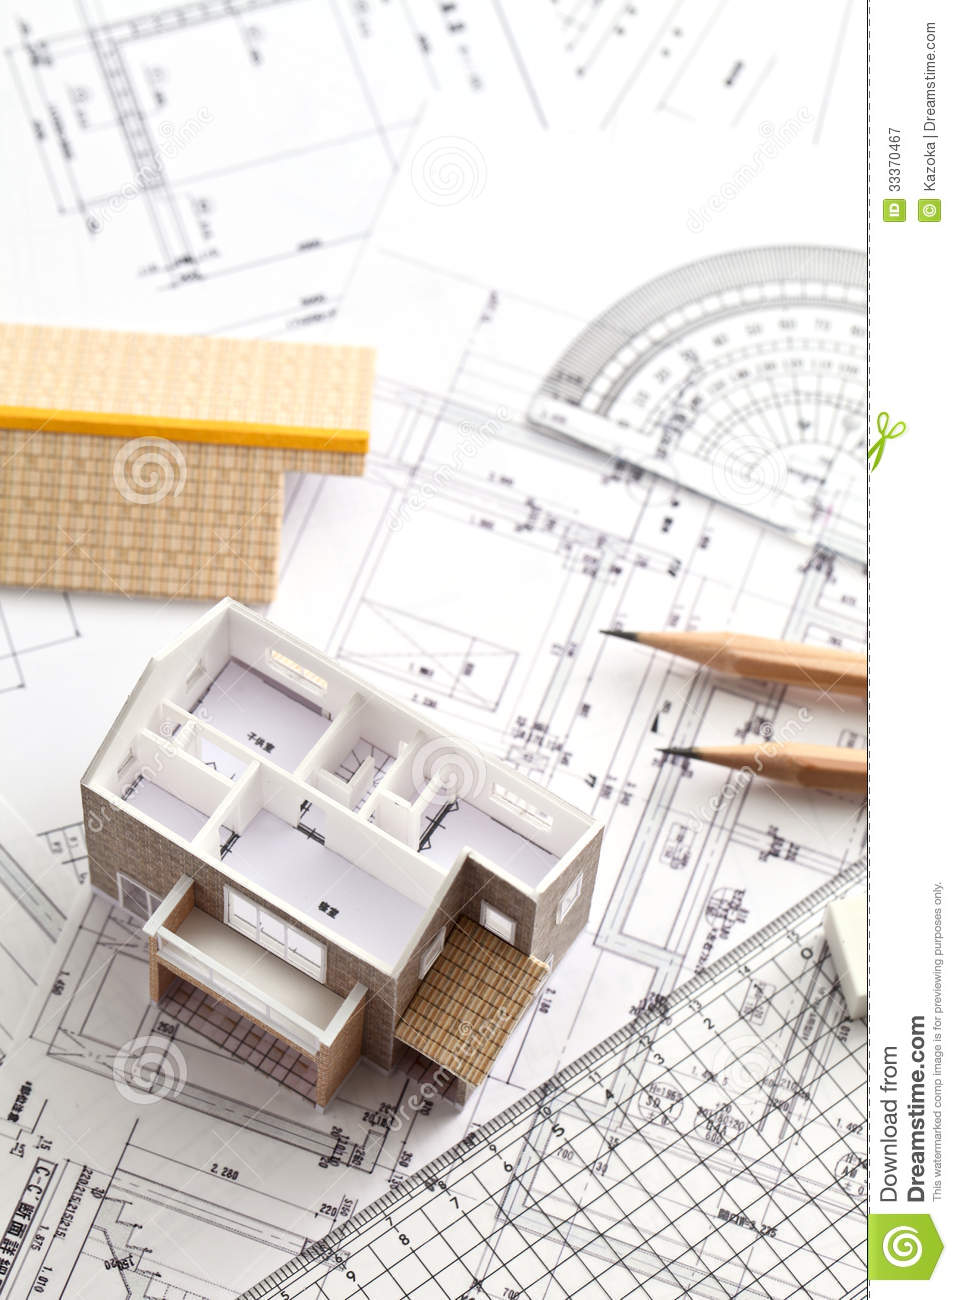 House design drawing stock image image of dwelling - Designing and building your own home ...